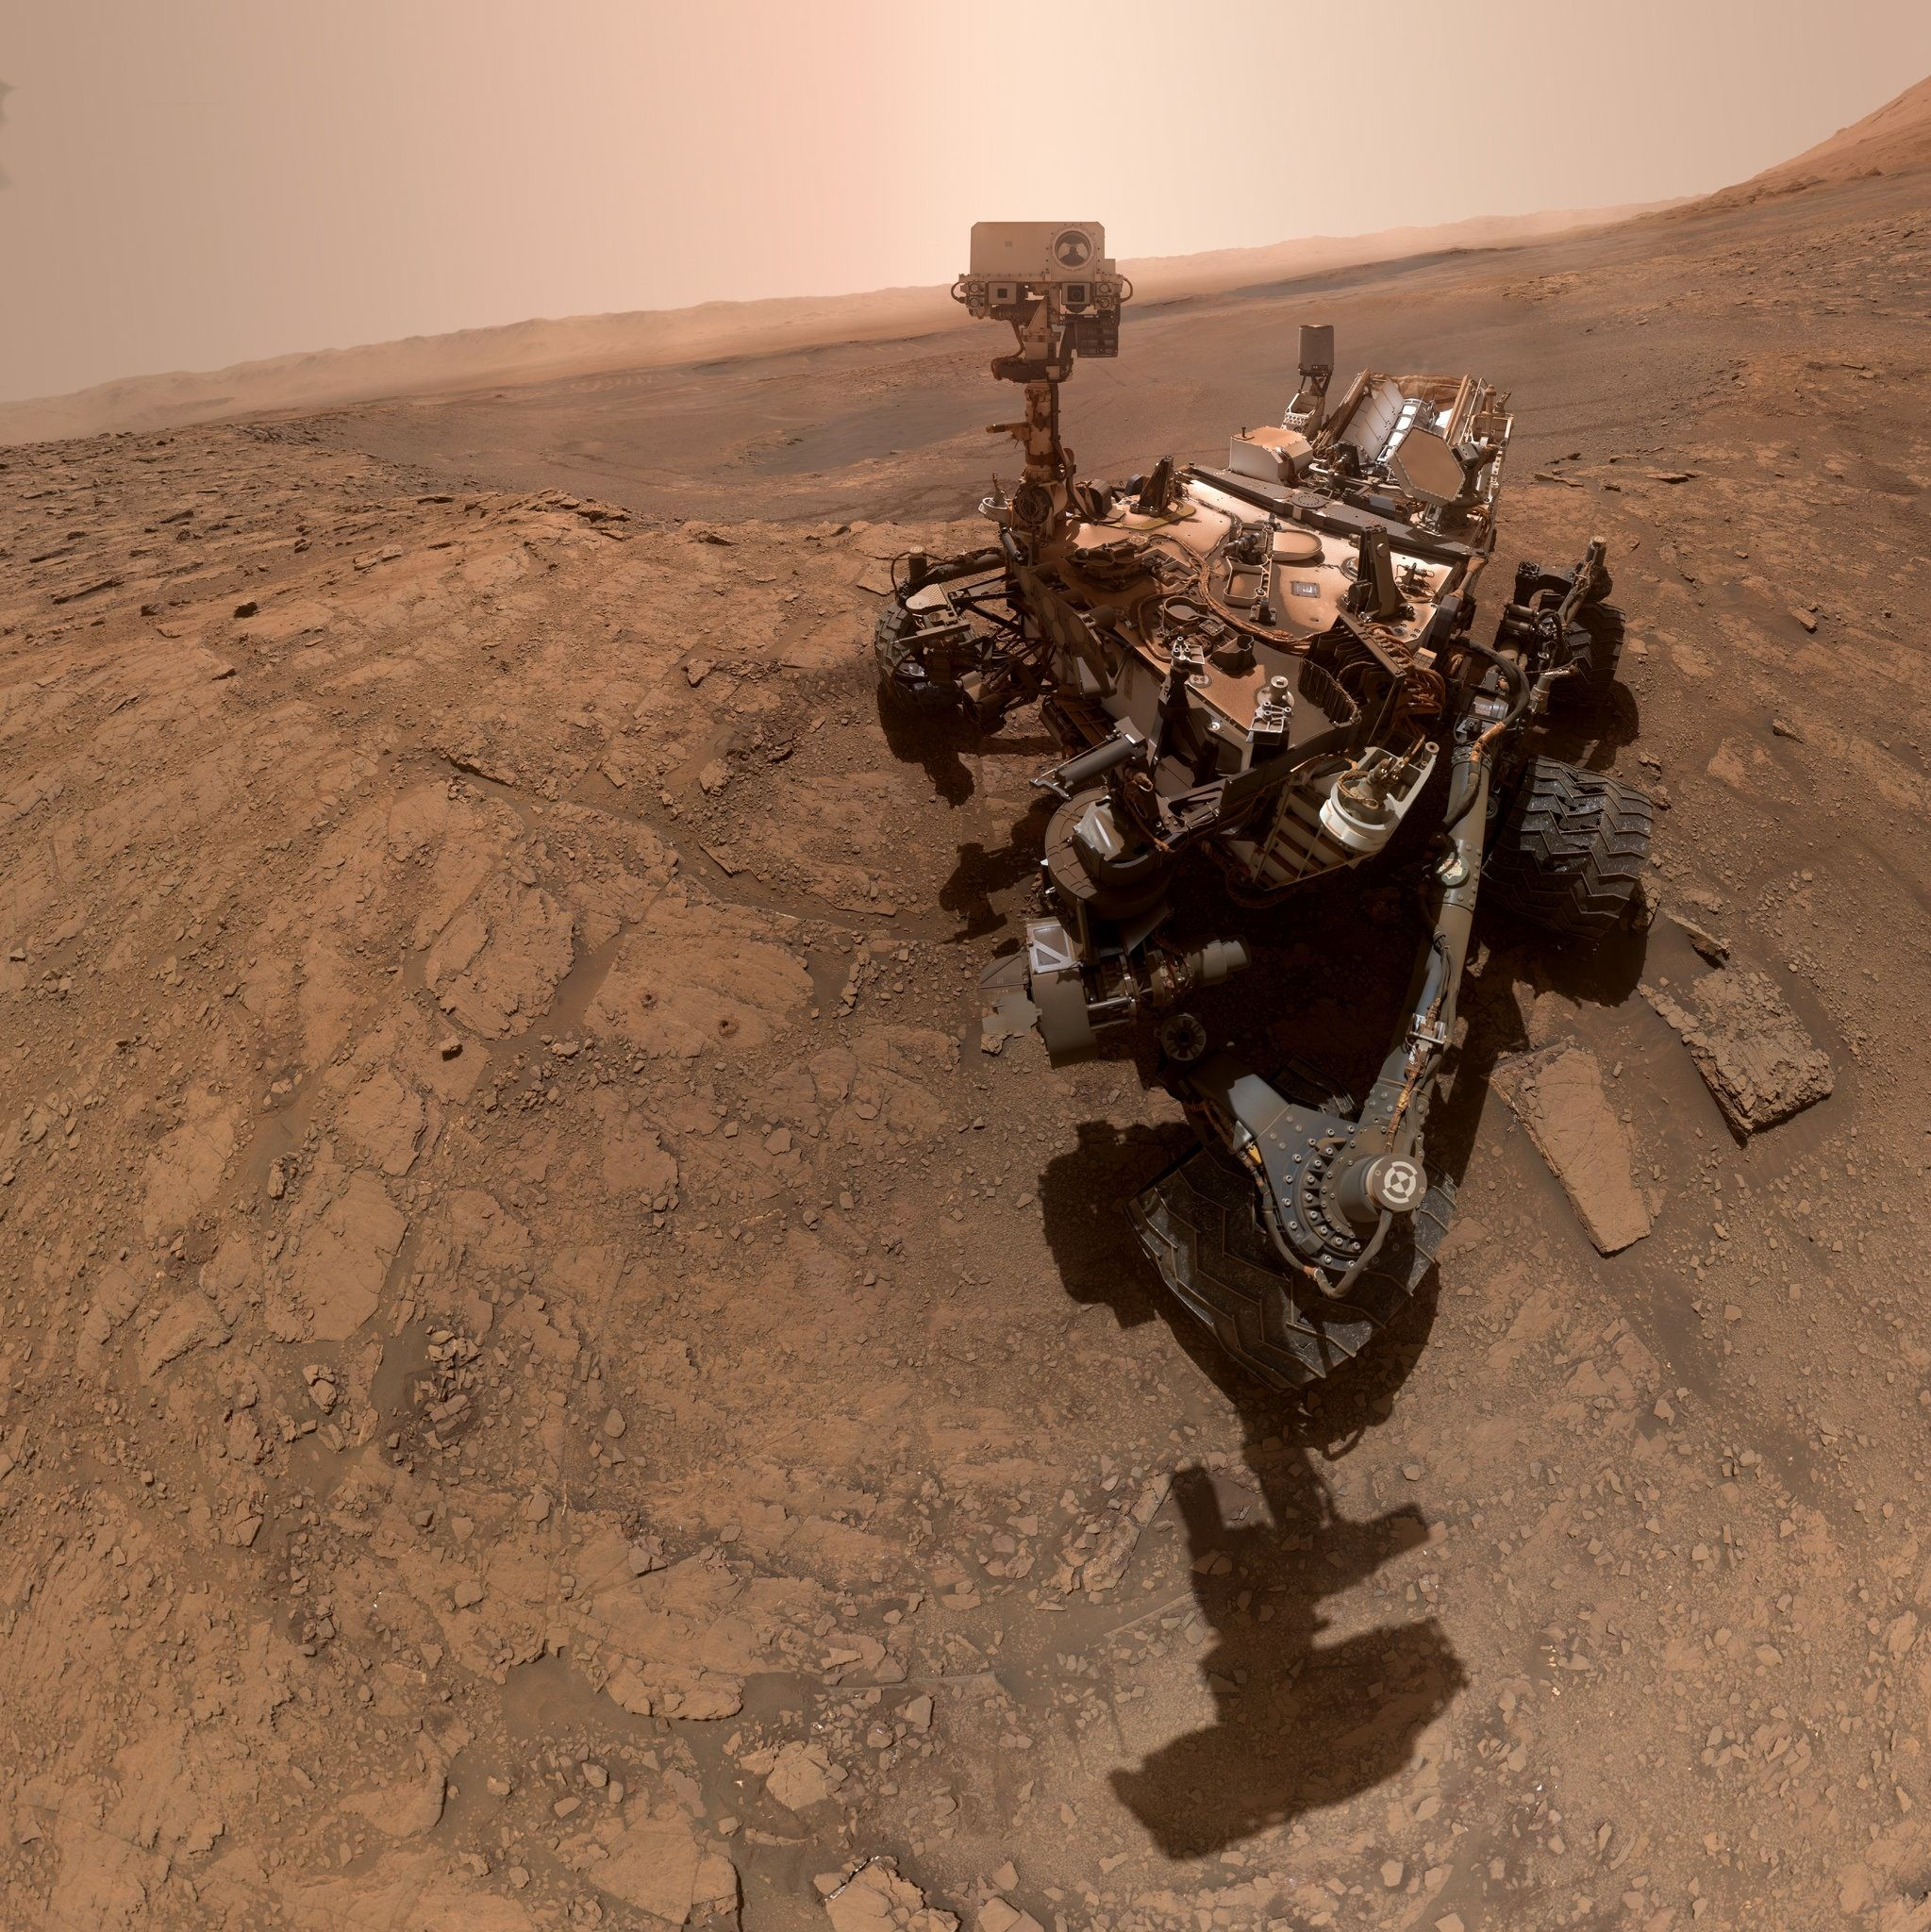 Oxygen On Mars Adds To Atmospheric Mysteries In 2020 Curiosity Rover Curiosity Mars Mars Rover